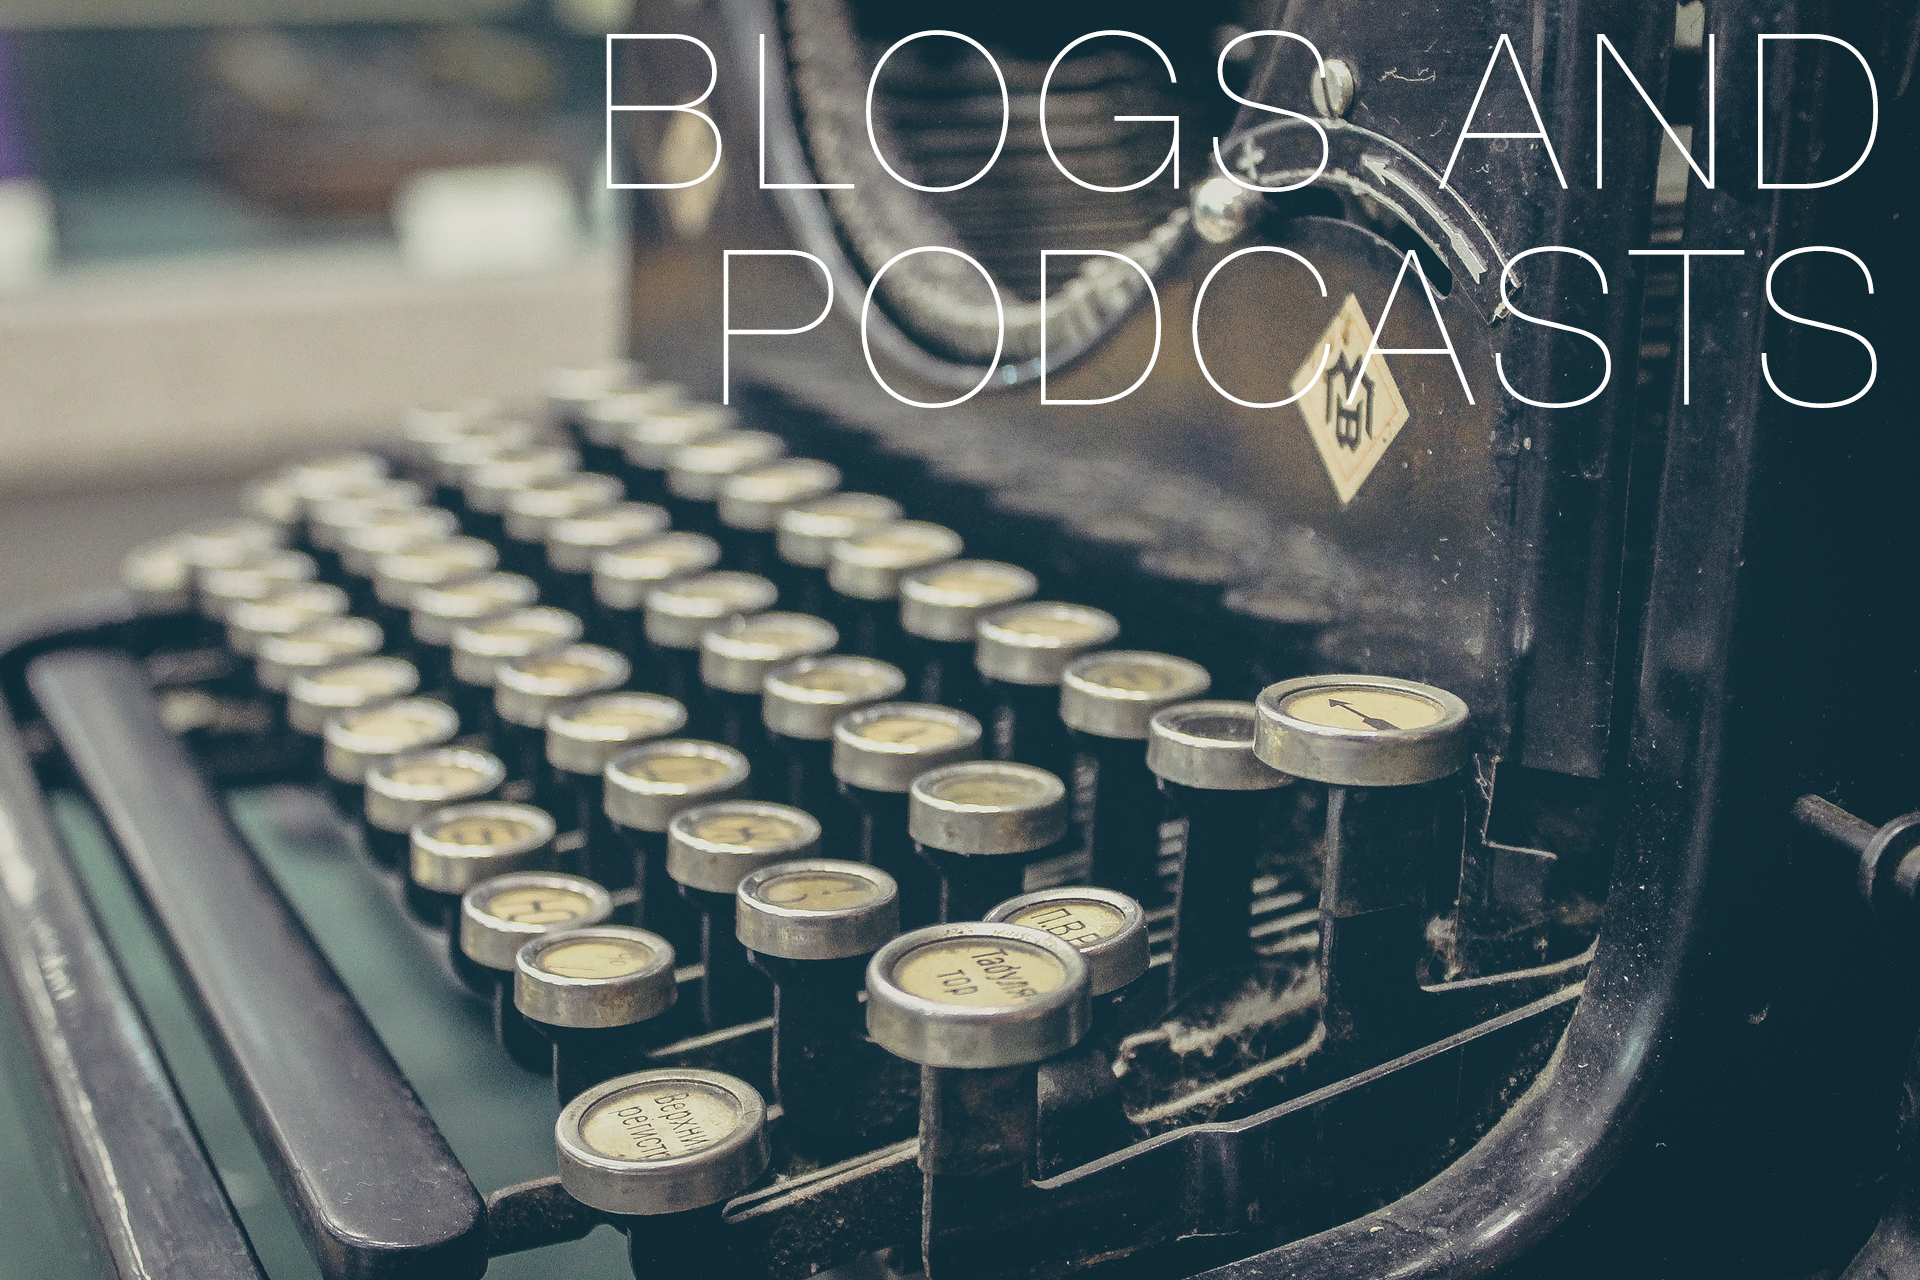 Blogs and Podcasts